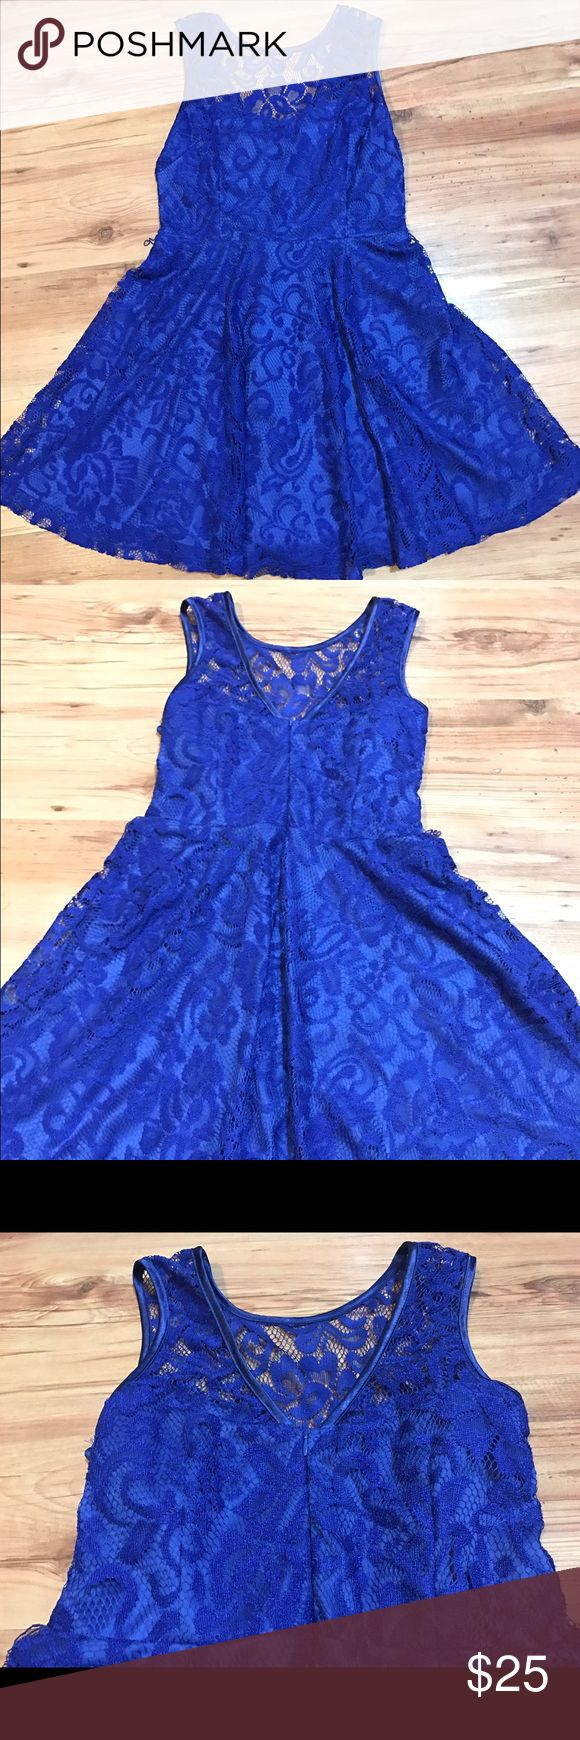 Beautiful lace dress Beautiful royal blue lace, see through halter, v back. This dress is truly stunning! Worn once! Sally Miller Dresses Midi